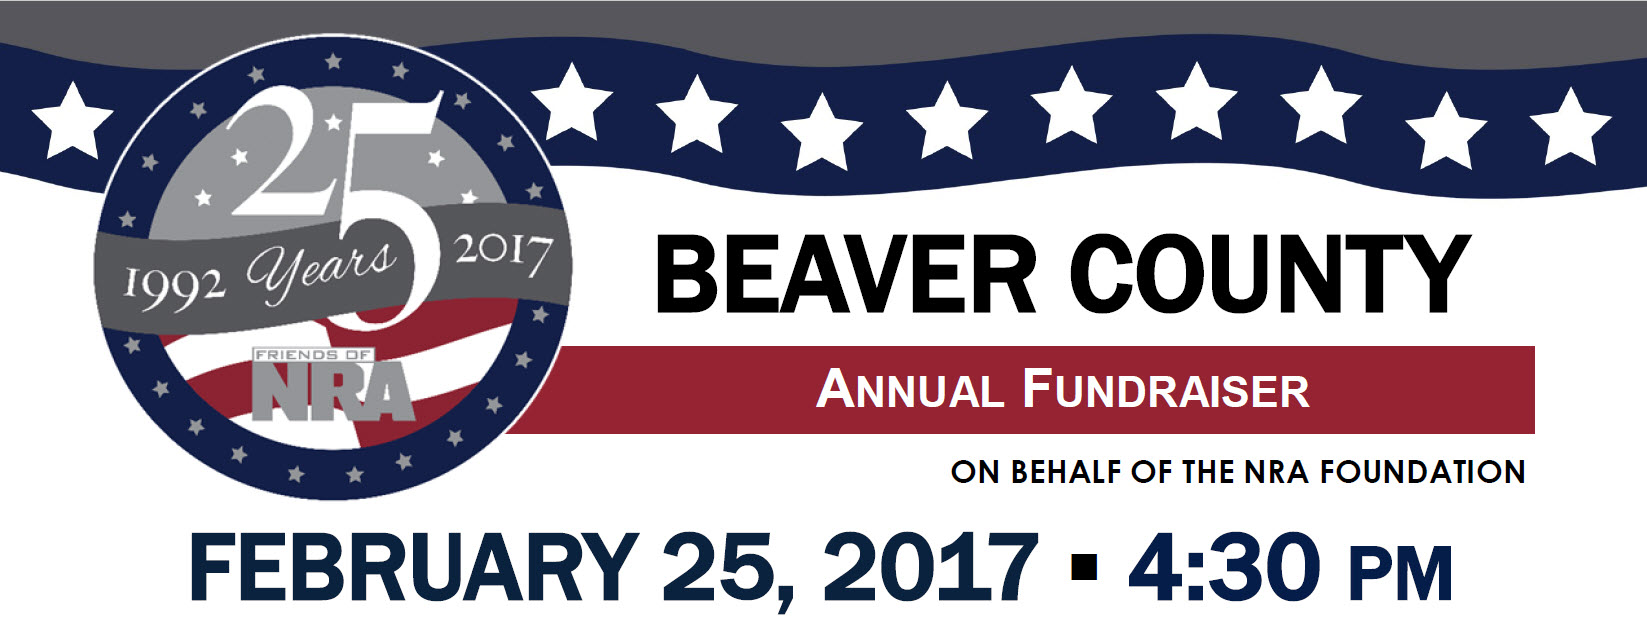 Beaver County Annual Fundraiser Friends of NRA